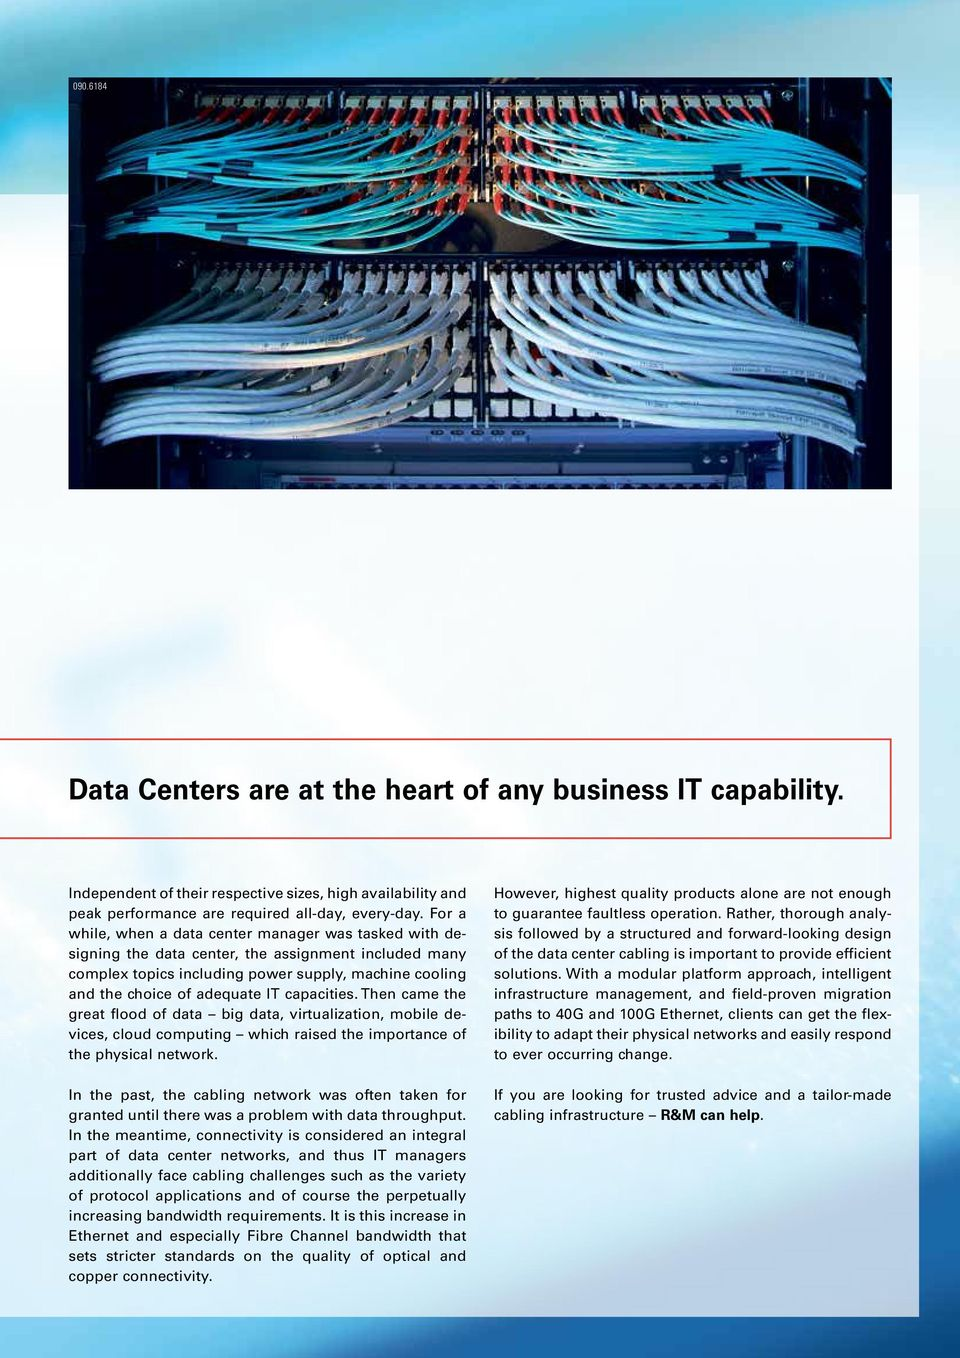 capacities. Then came the great flood of data big data, virtualization, mobile devices, cloud computing which raised the importance of the physical network.